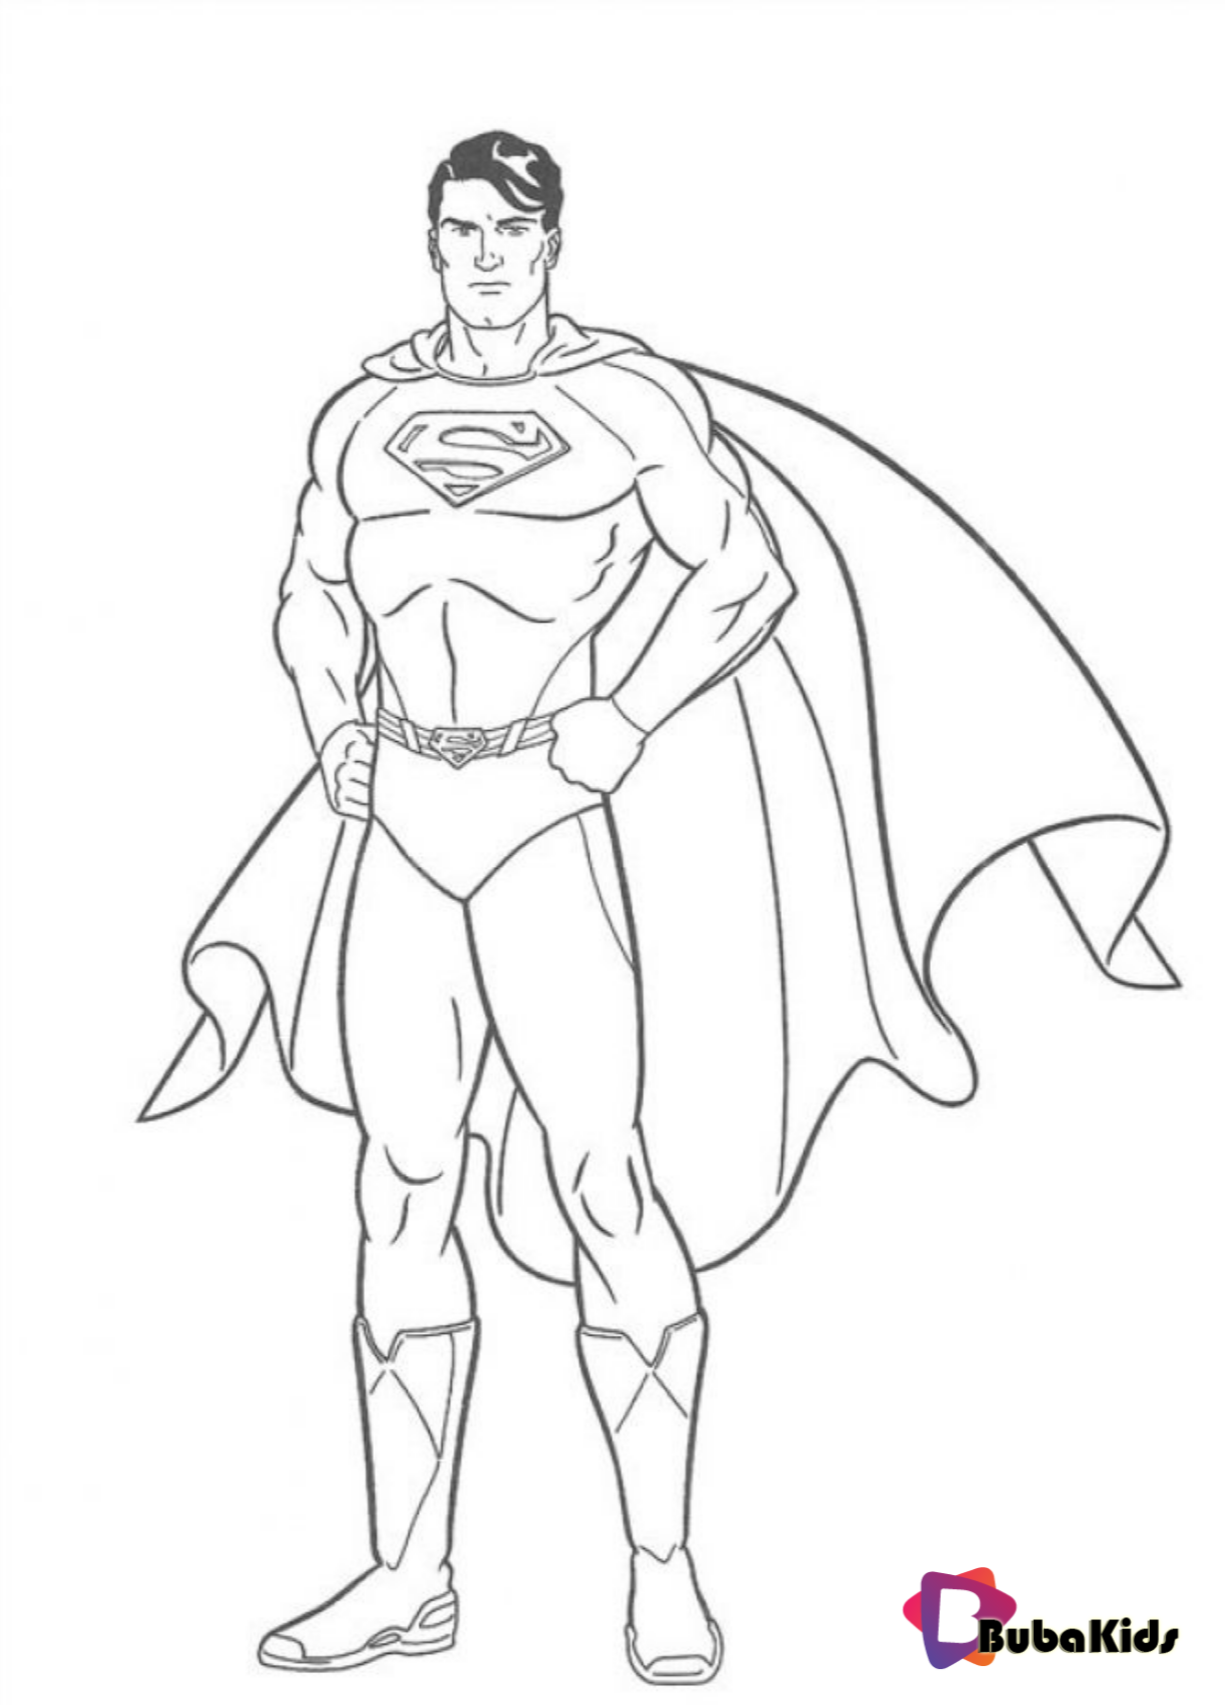 Printable Superman Coloring Pages on bubakids.com Wallpaper